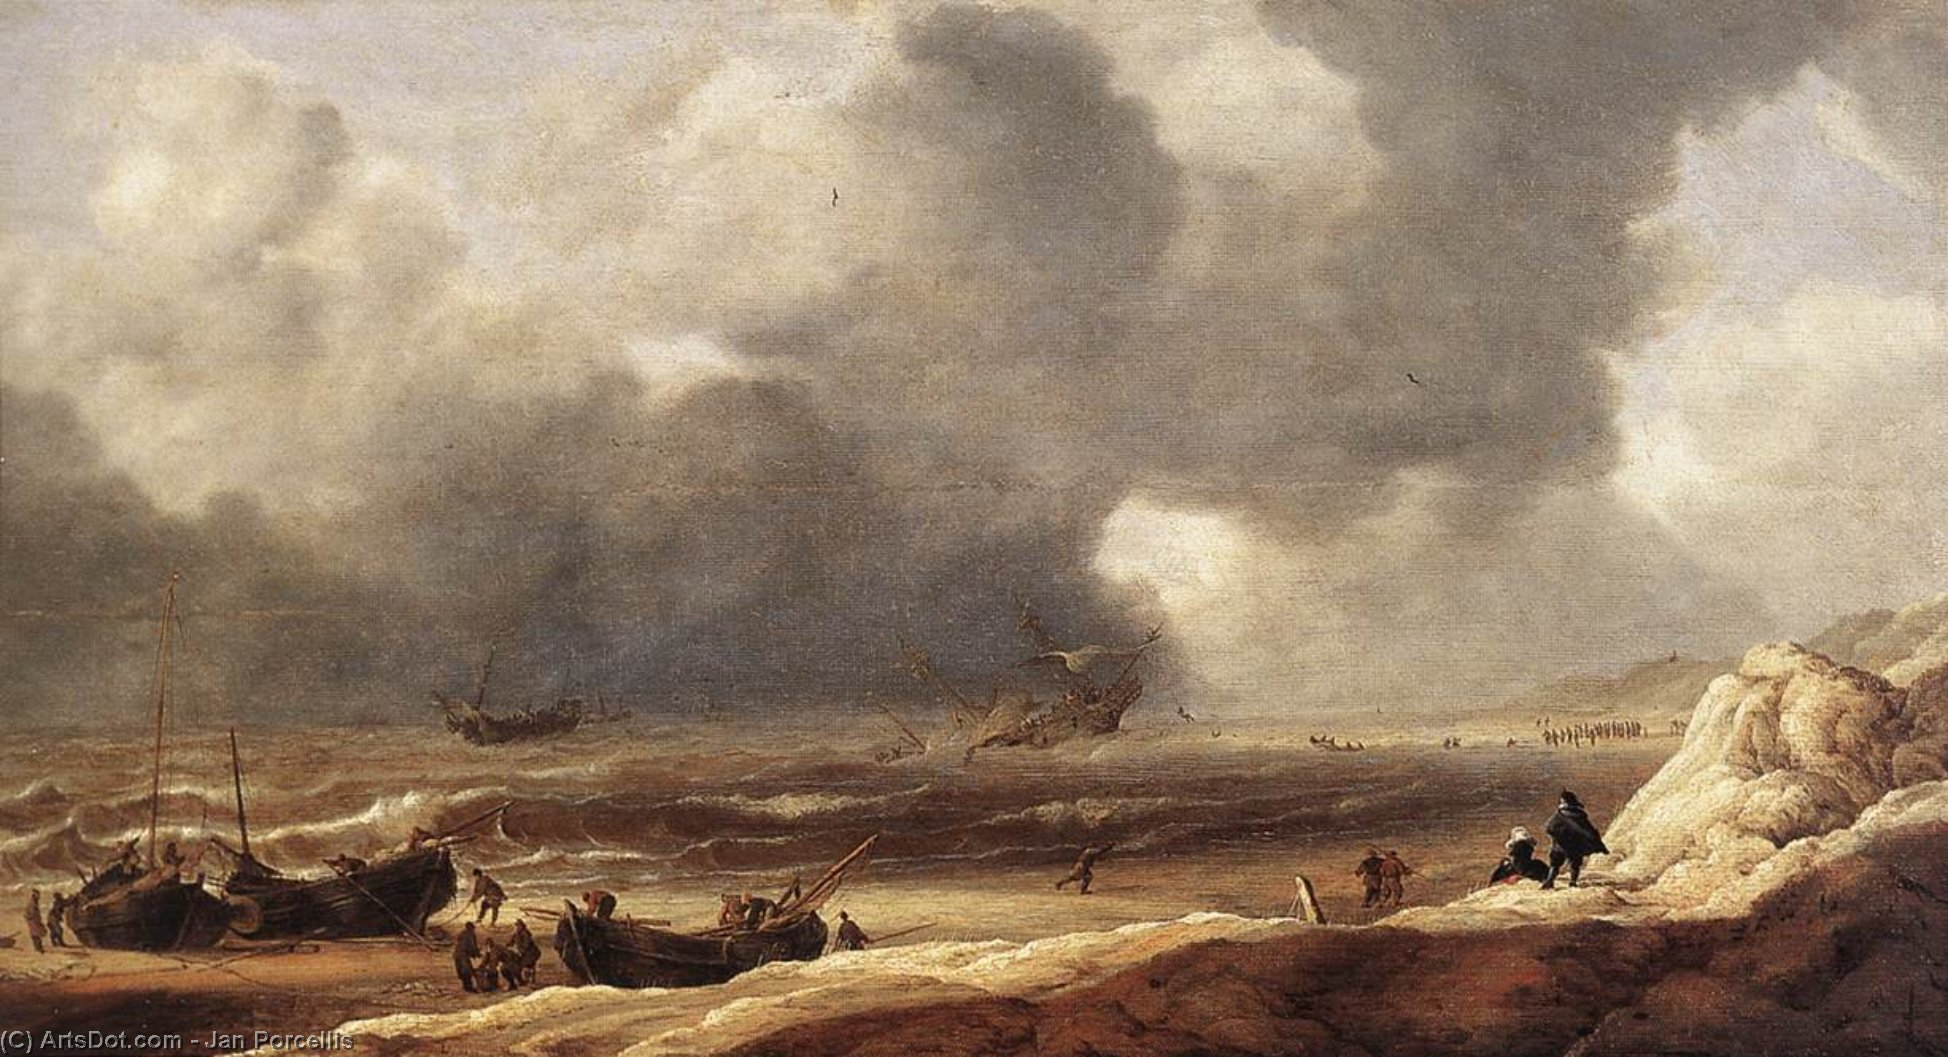 Wikioo.org - The Encyclopedia of Fine Arts - Painting, Artwork by Jan Porcellis - Shipwreck on a Beach